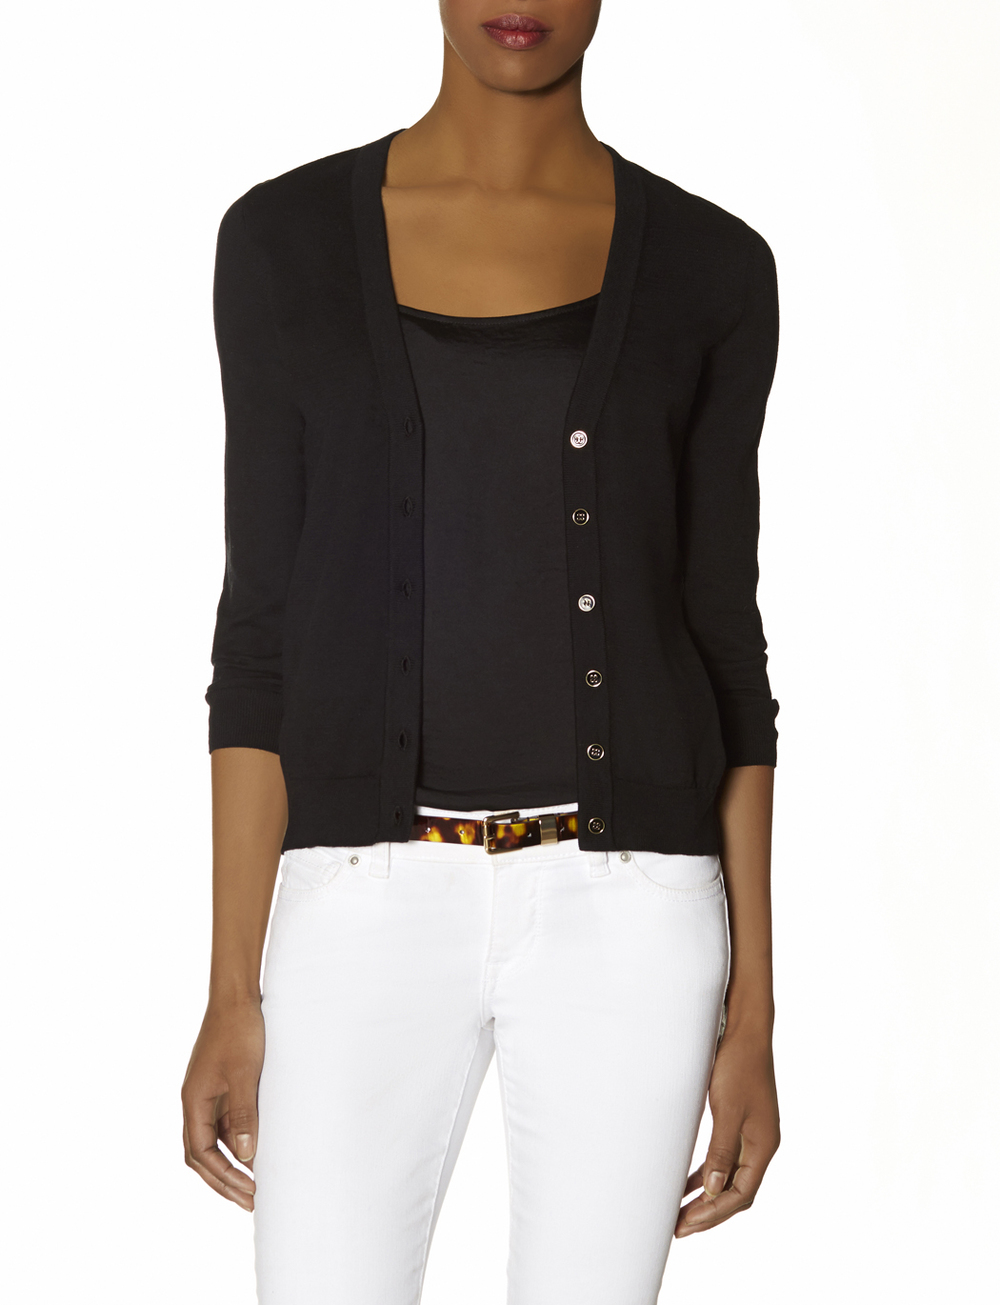 Petite V Neck cardigan. Available black, white. The Limited. Was: $49.95. Now 40% off. CODE: ALL40.